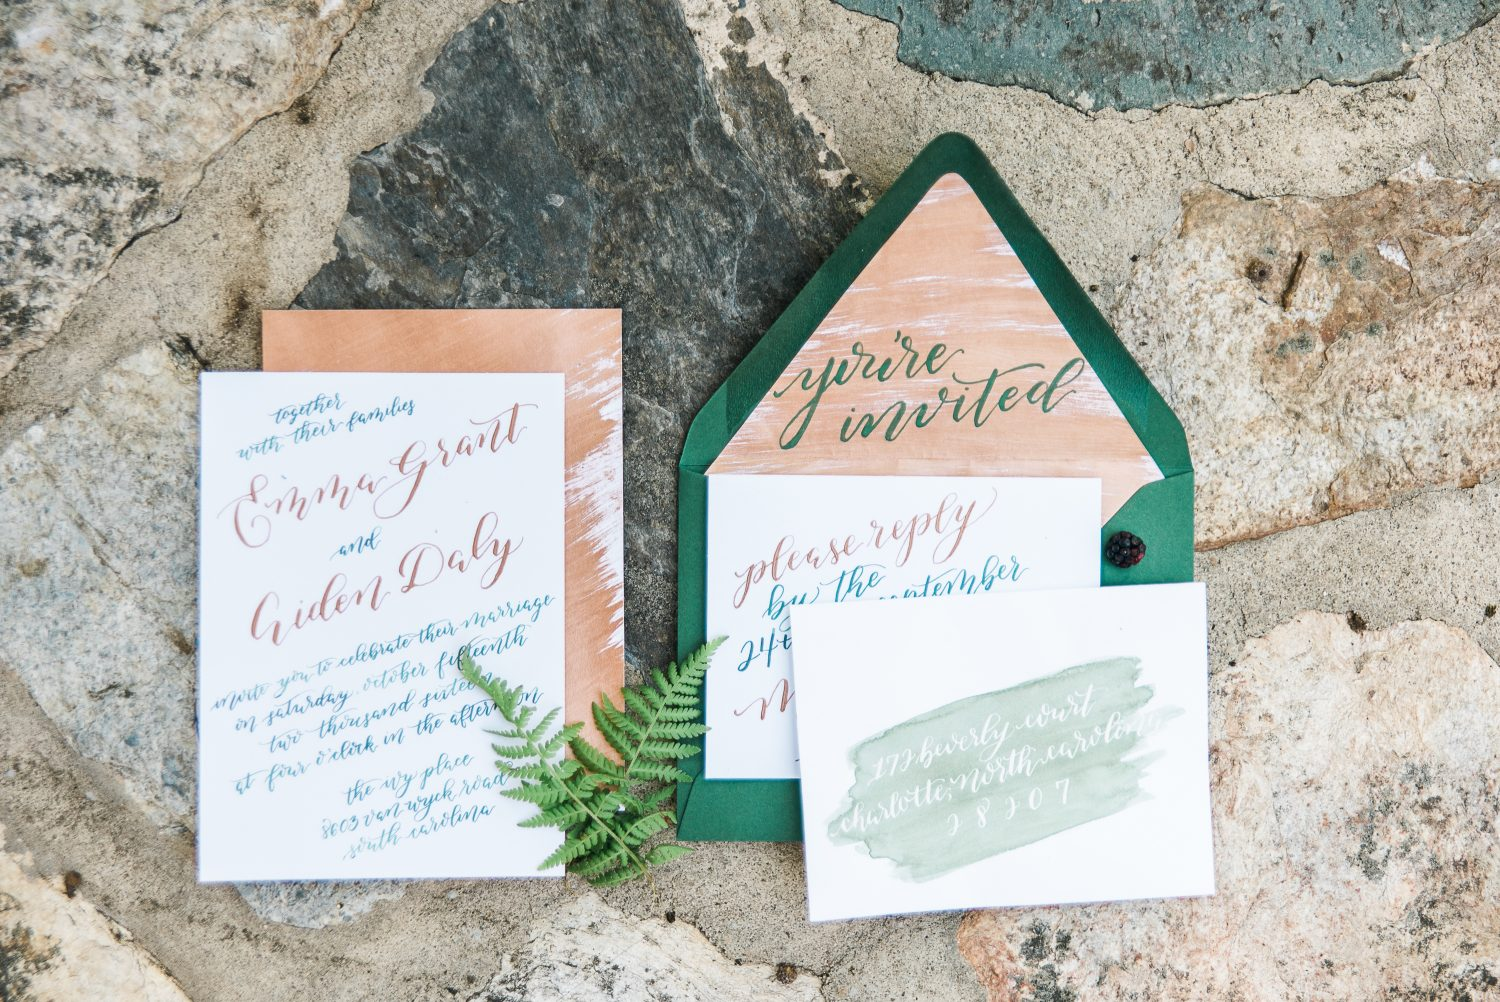 Green wedding envelope with copper inserts and custom calligraphy invitation.